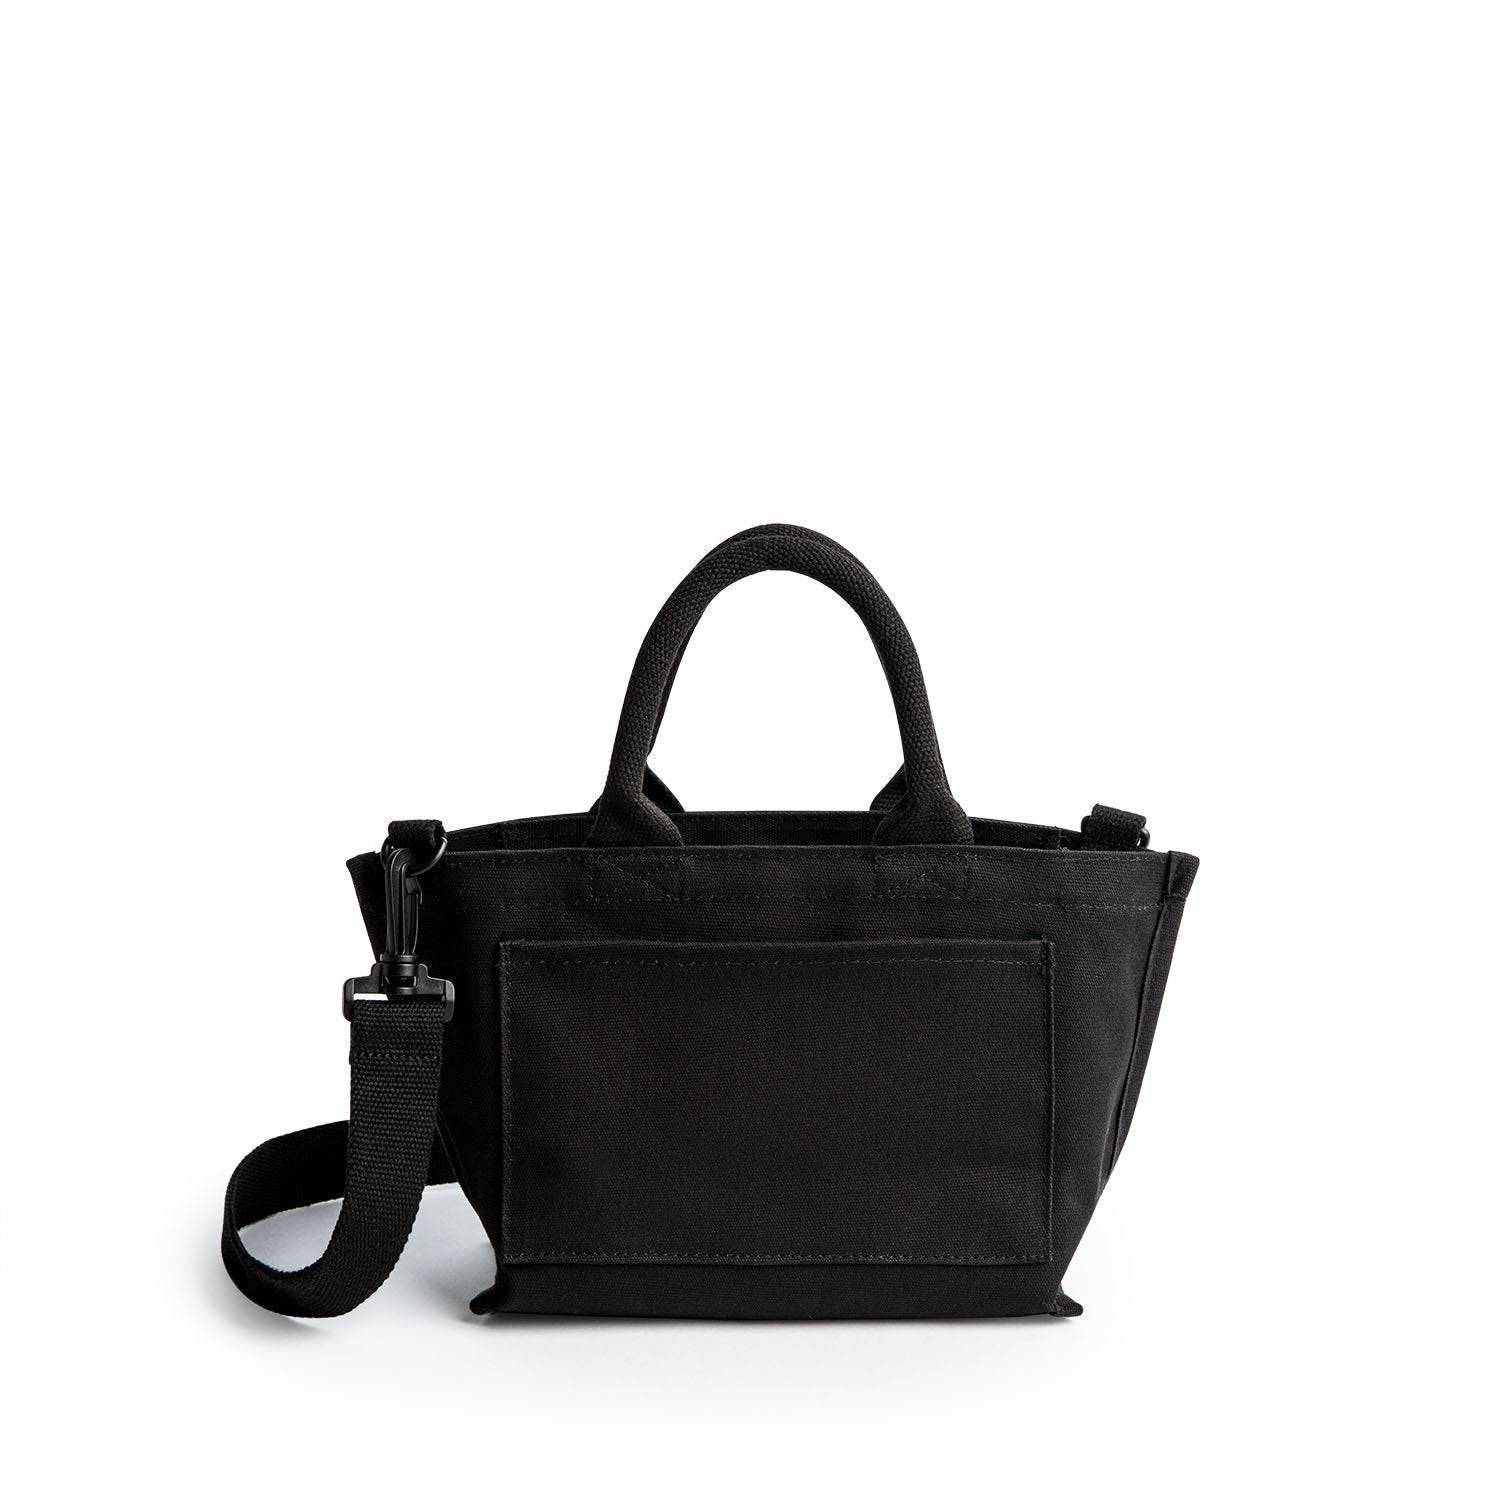 ESLONA MINI (TEEGA) - BLACK